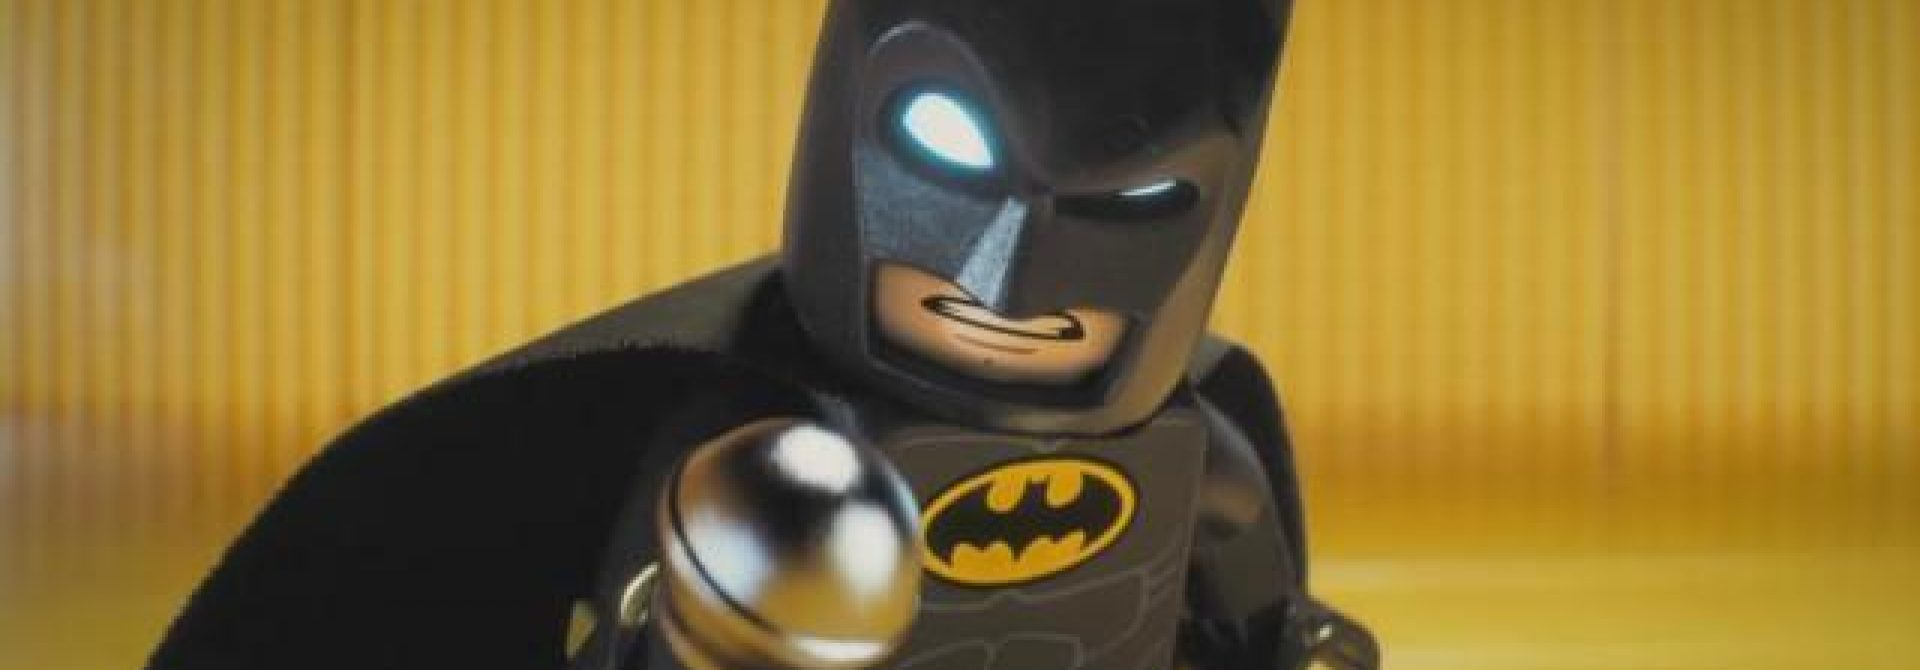 Lego Batman Director Game For DCEU Film